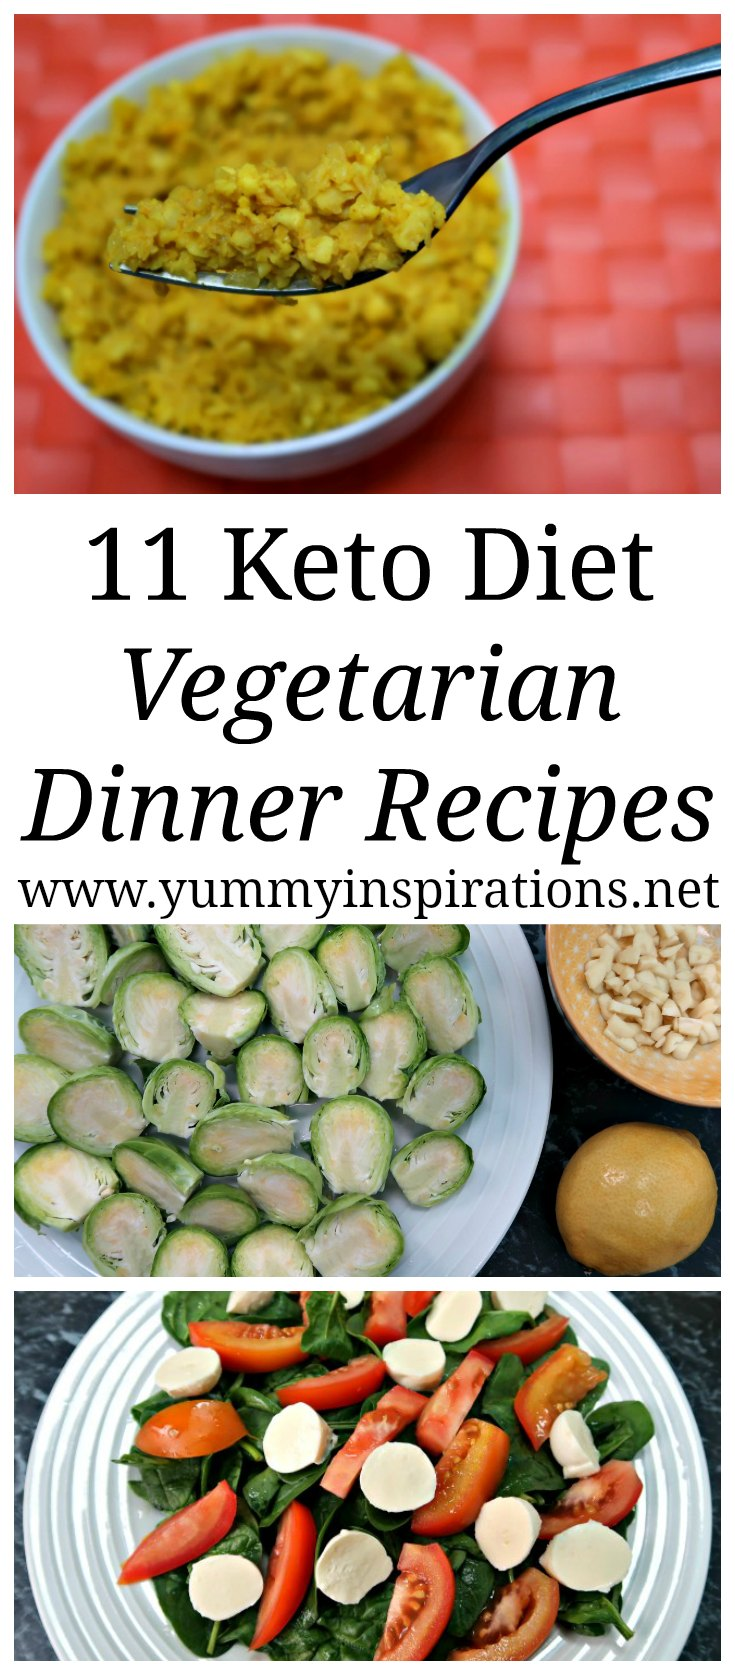 11 Keto Vegetarian Dinner Recipes - Easy Low Carb Meal Ideas that are perfect for meat free dinners for your Ketogenic Diet Meal Plan.